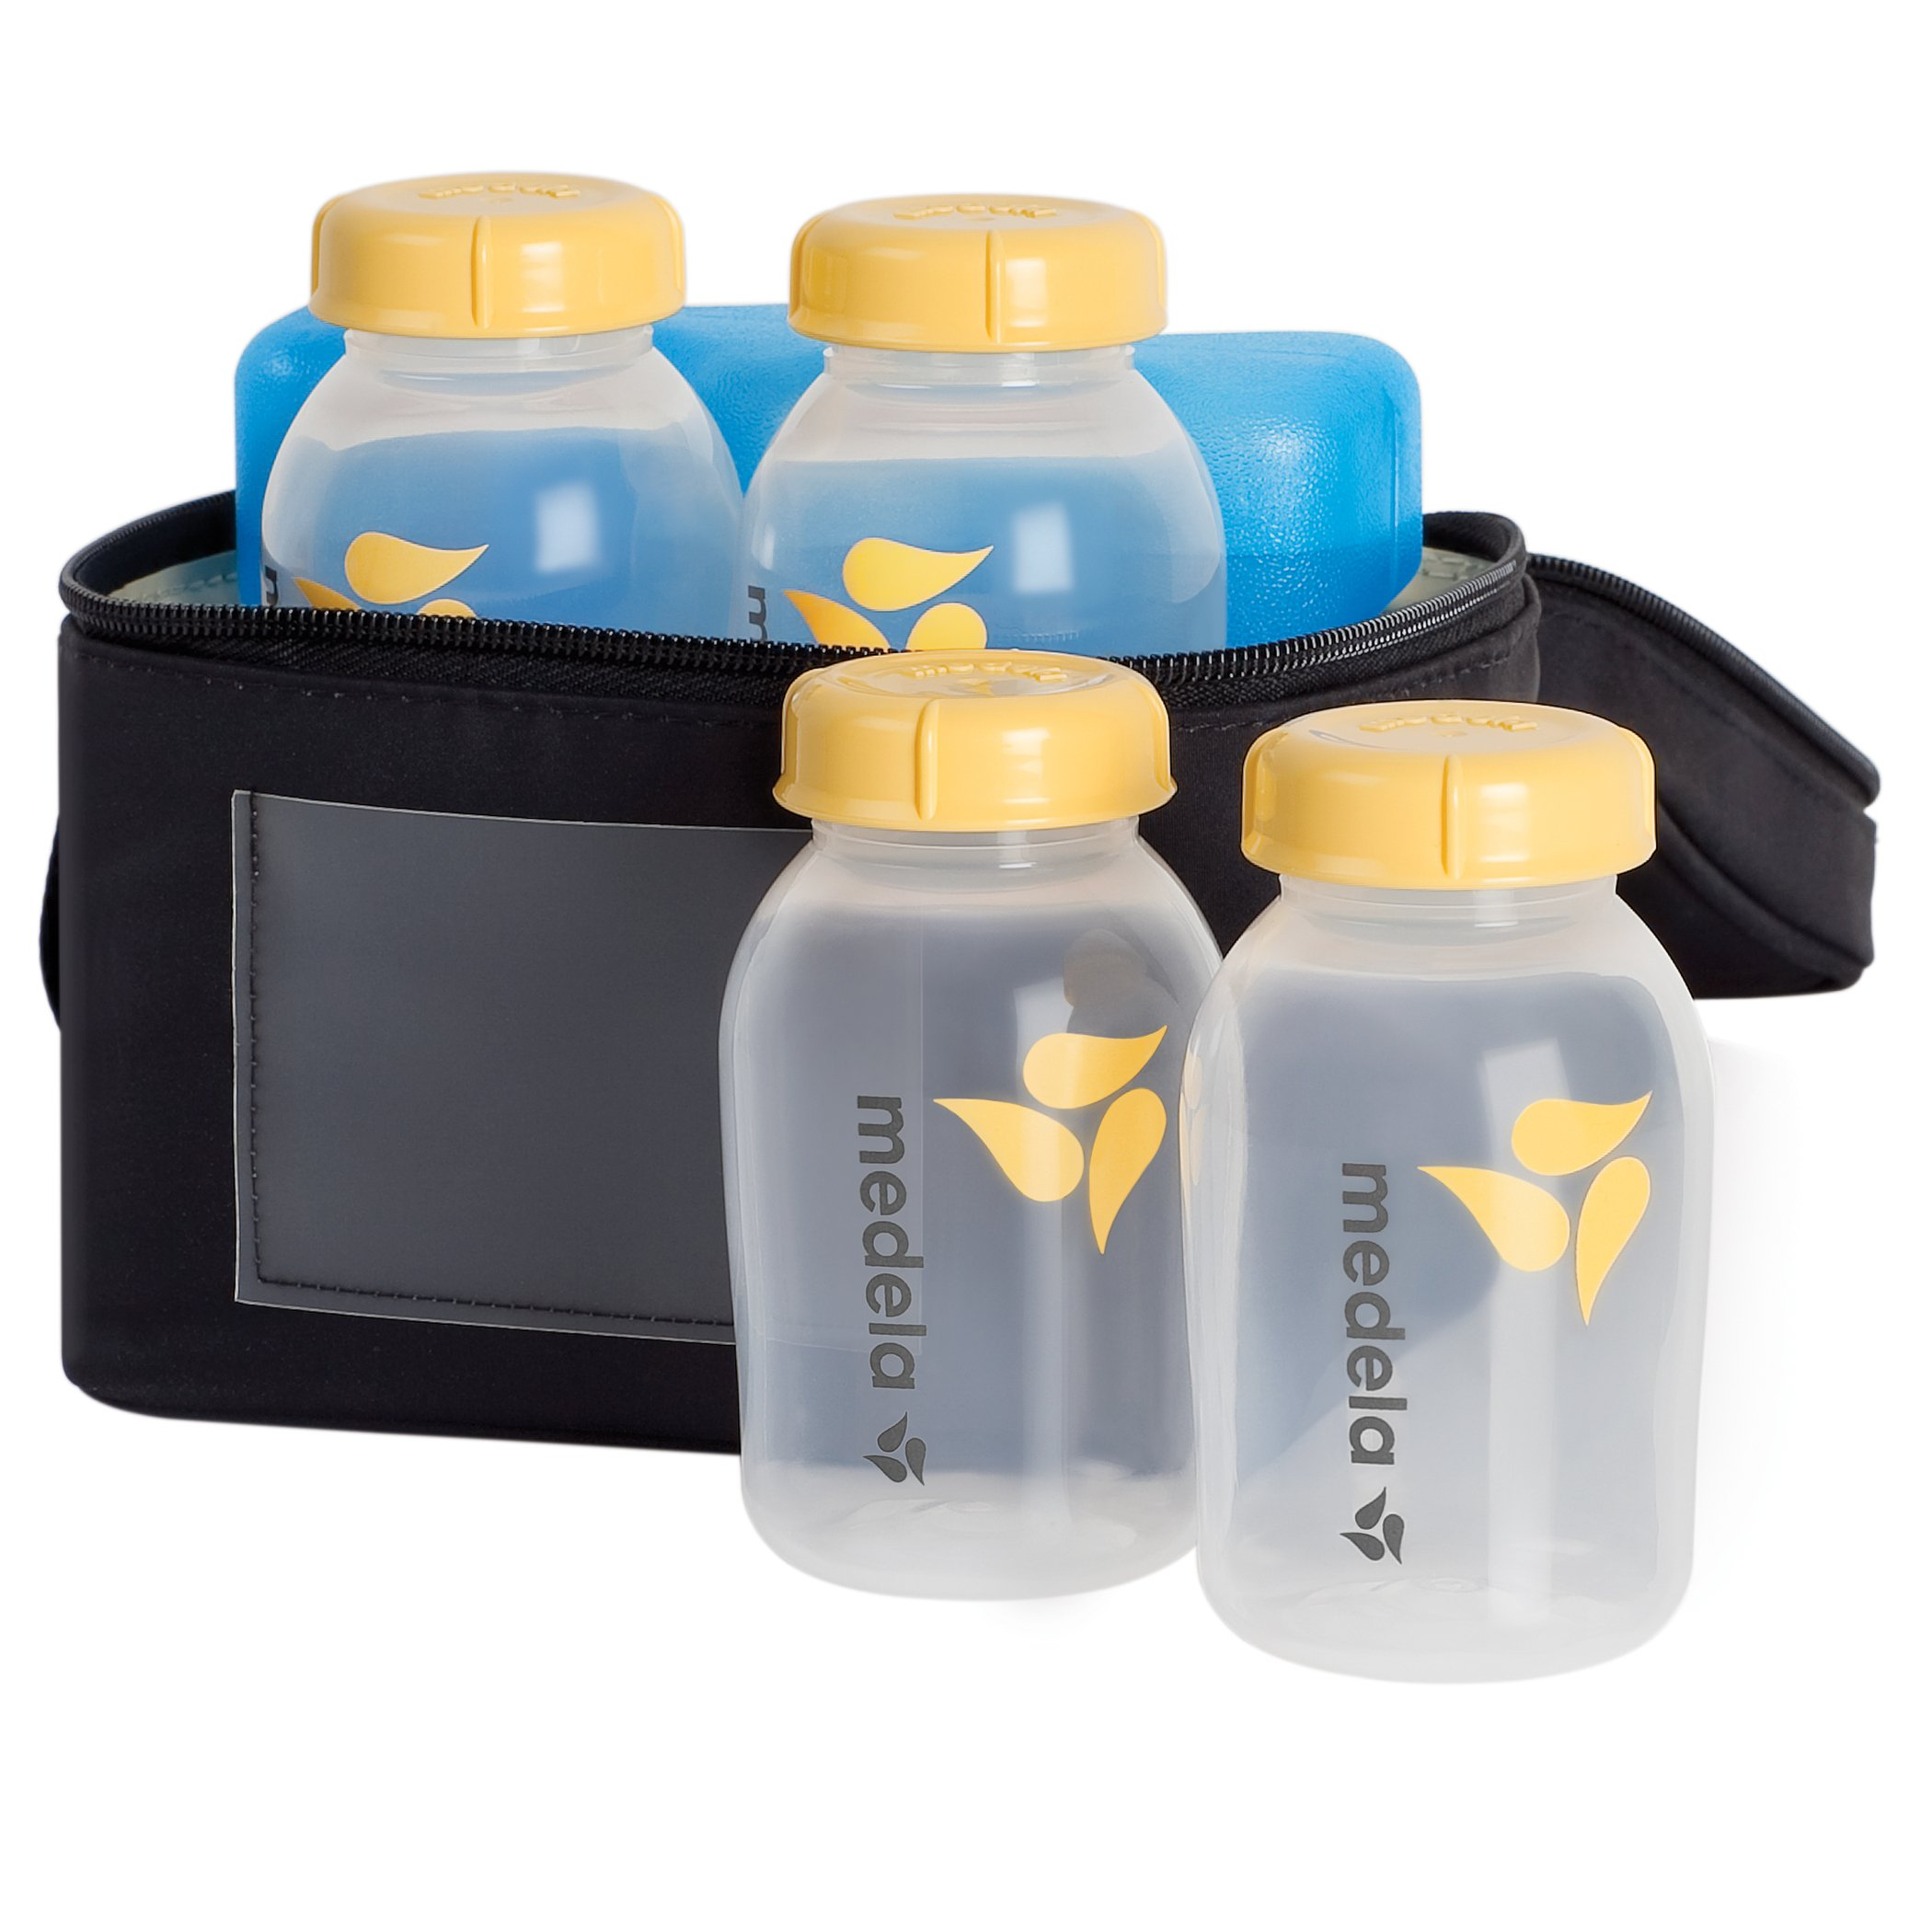 Medela Breast Milk Cooler and Transport Set, 5 ounce Bottles with Lids, Contoured Ice Pack, Cooler Carrier Bag by Medela